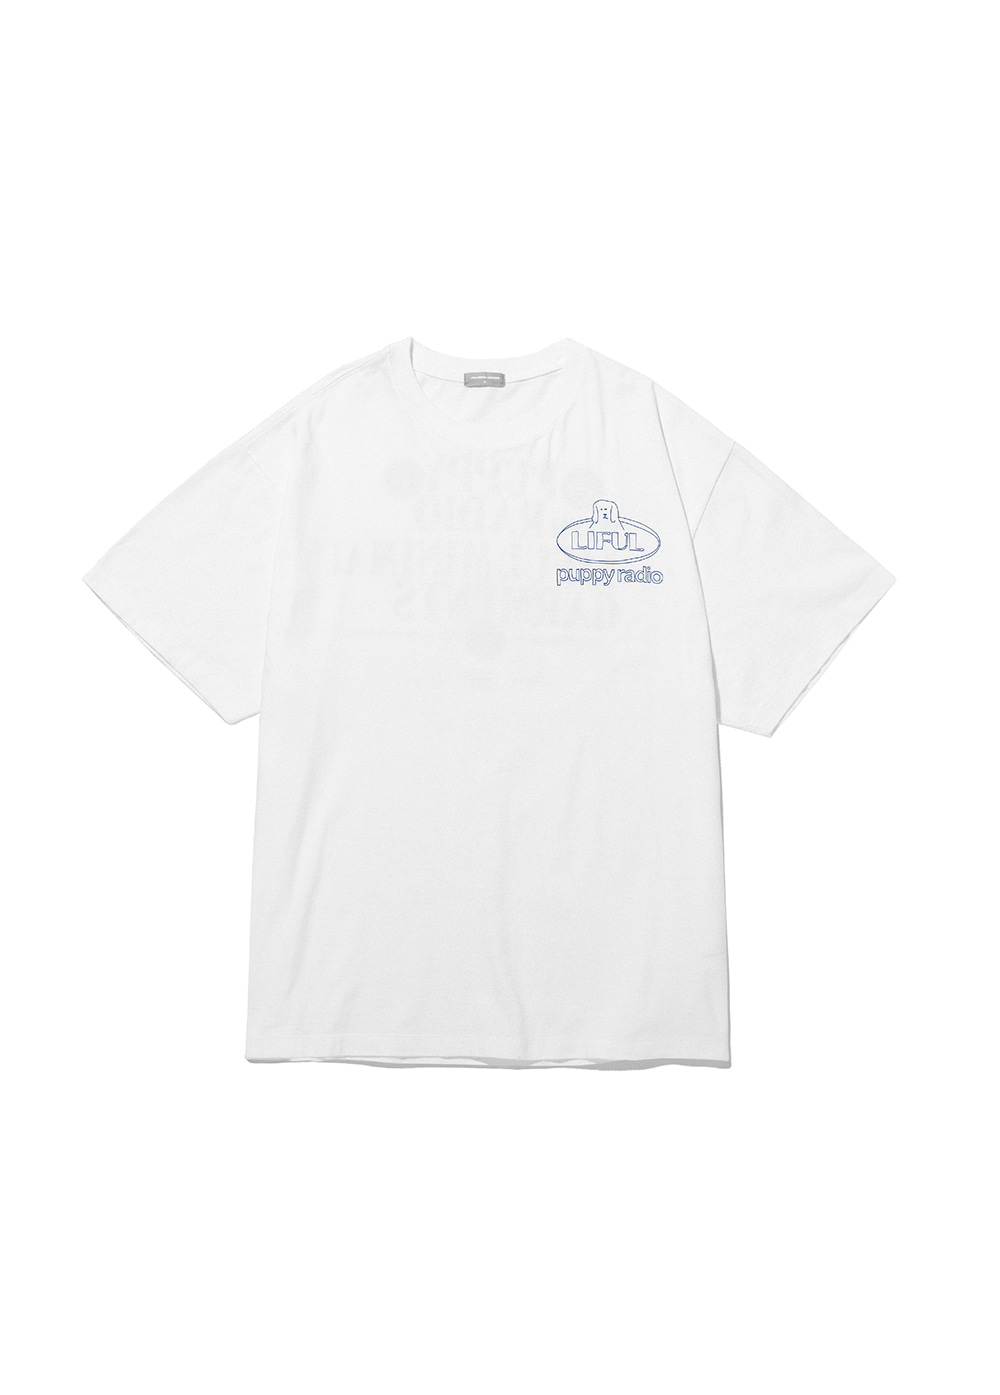 LIFUL x PUPPY RADIO SLOGAN TEE white